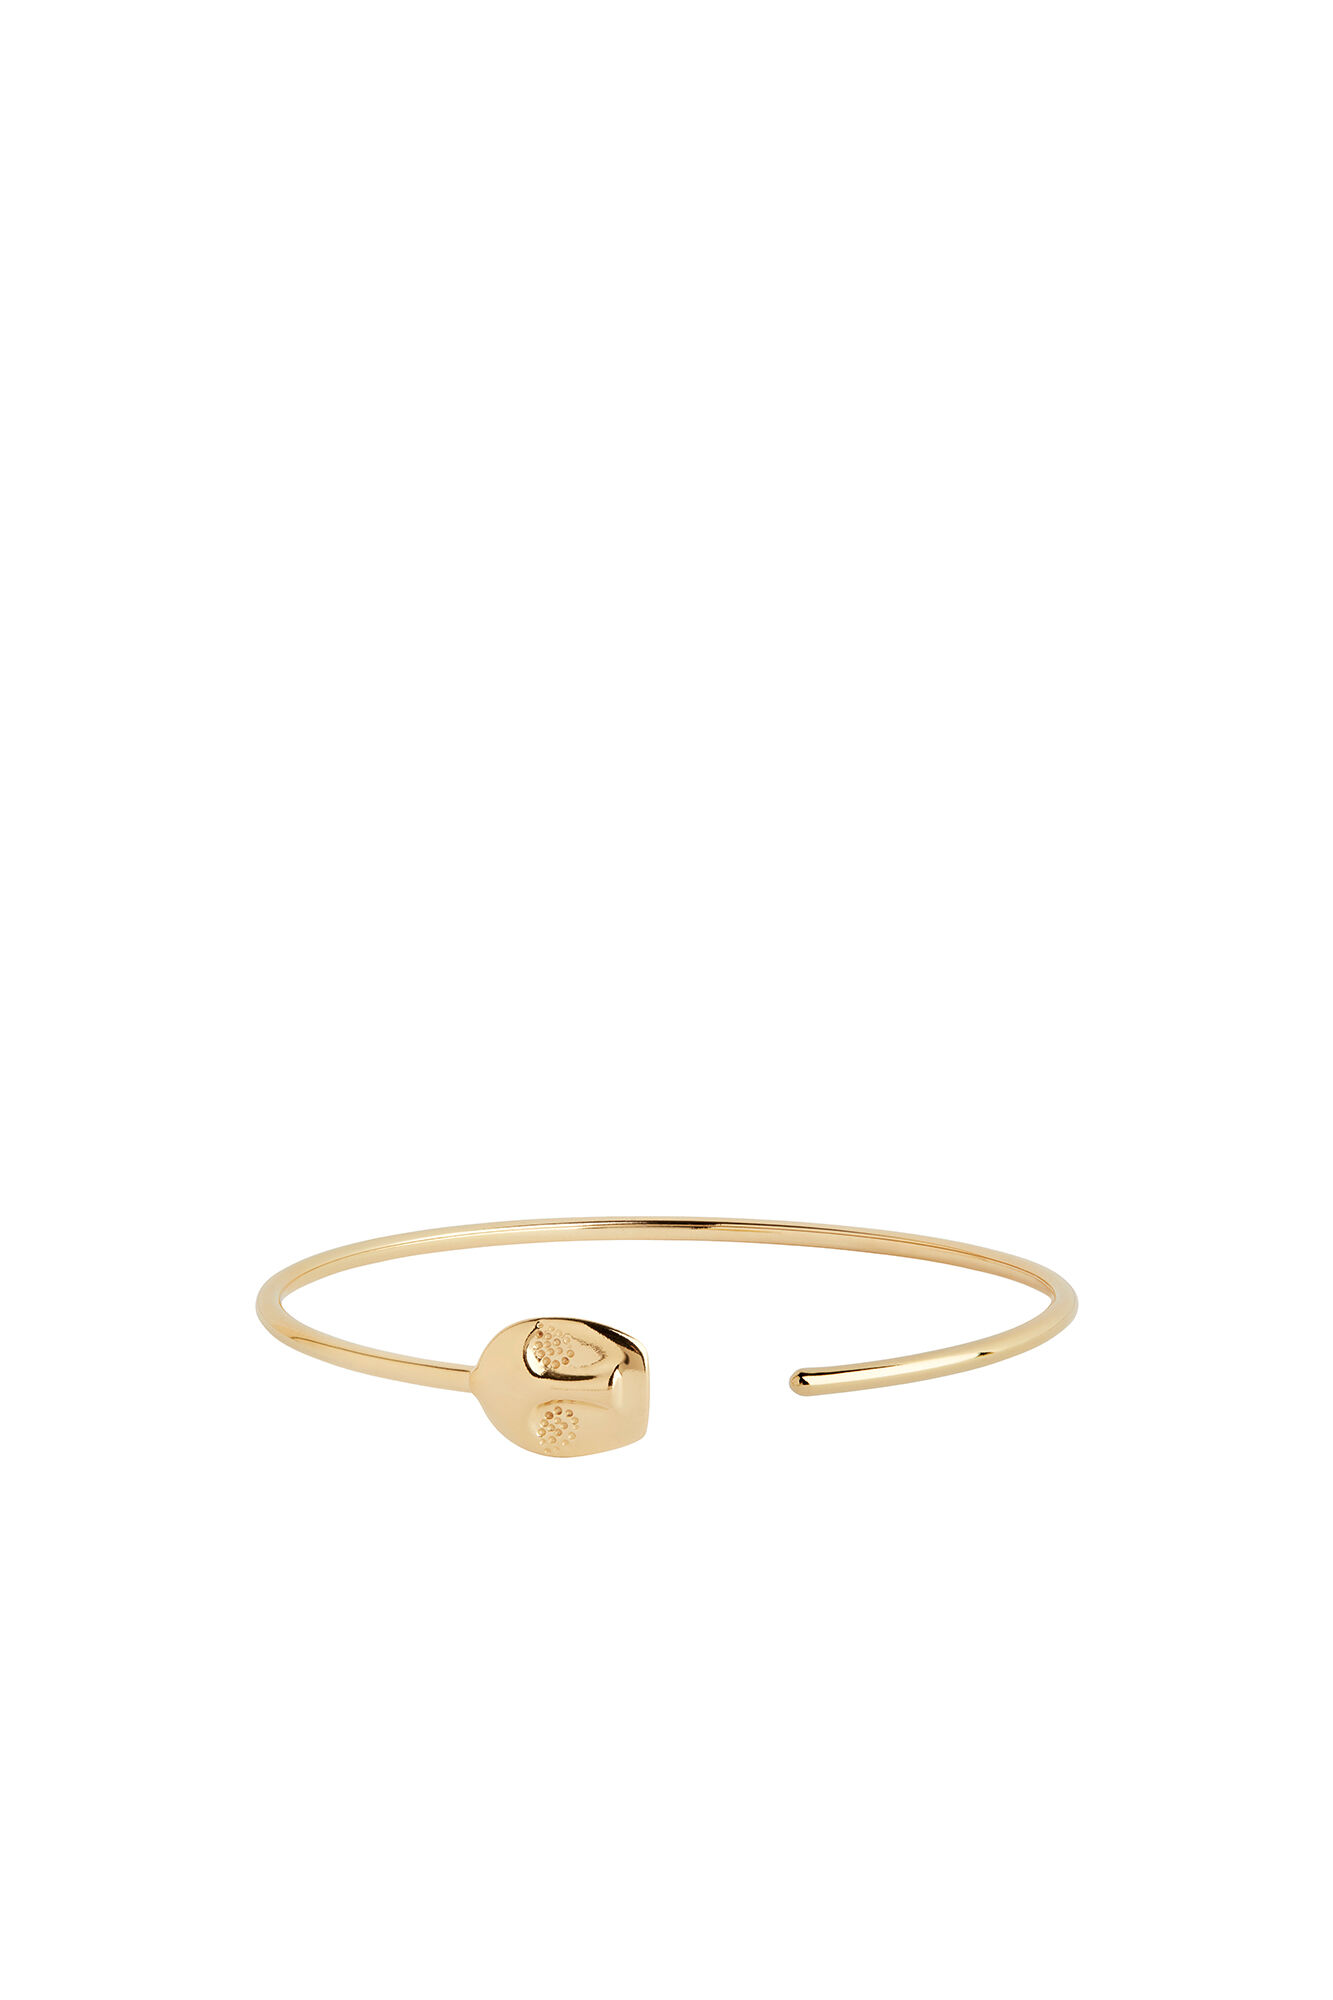 Ray bangle 400228YG